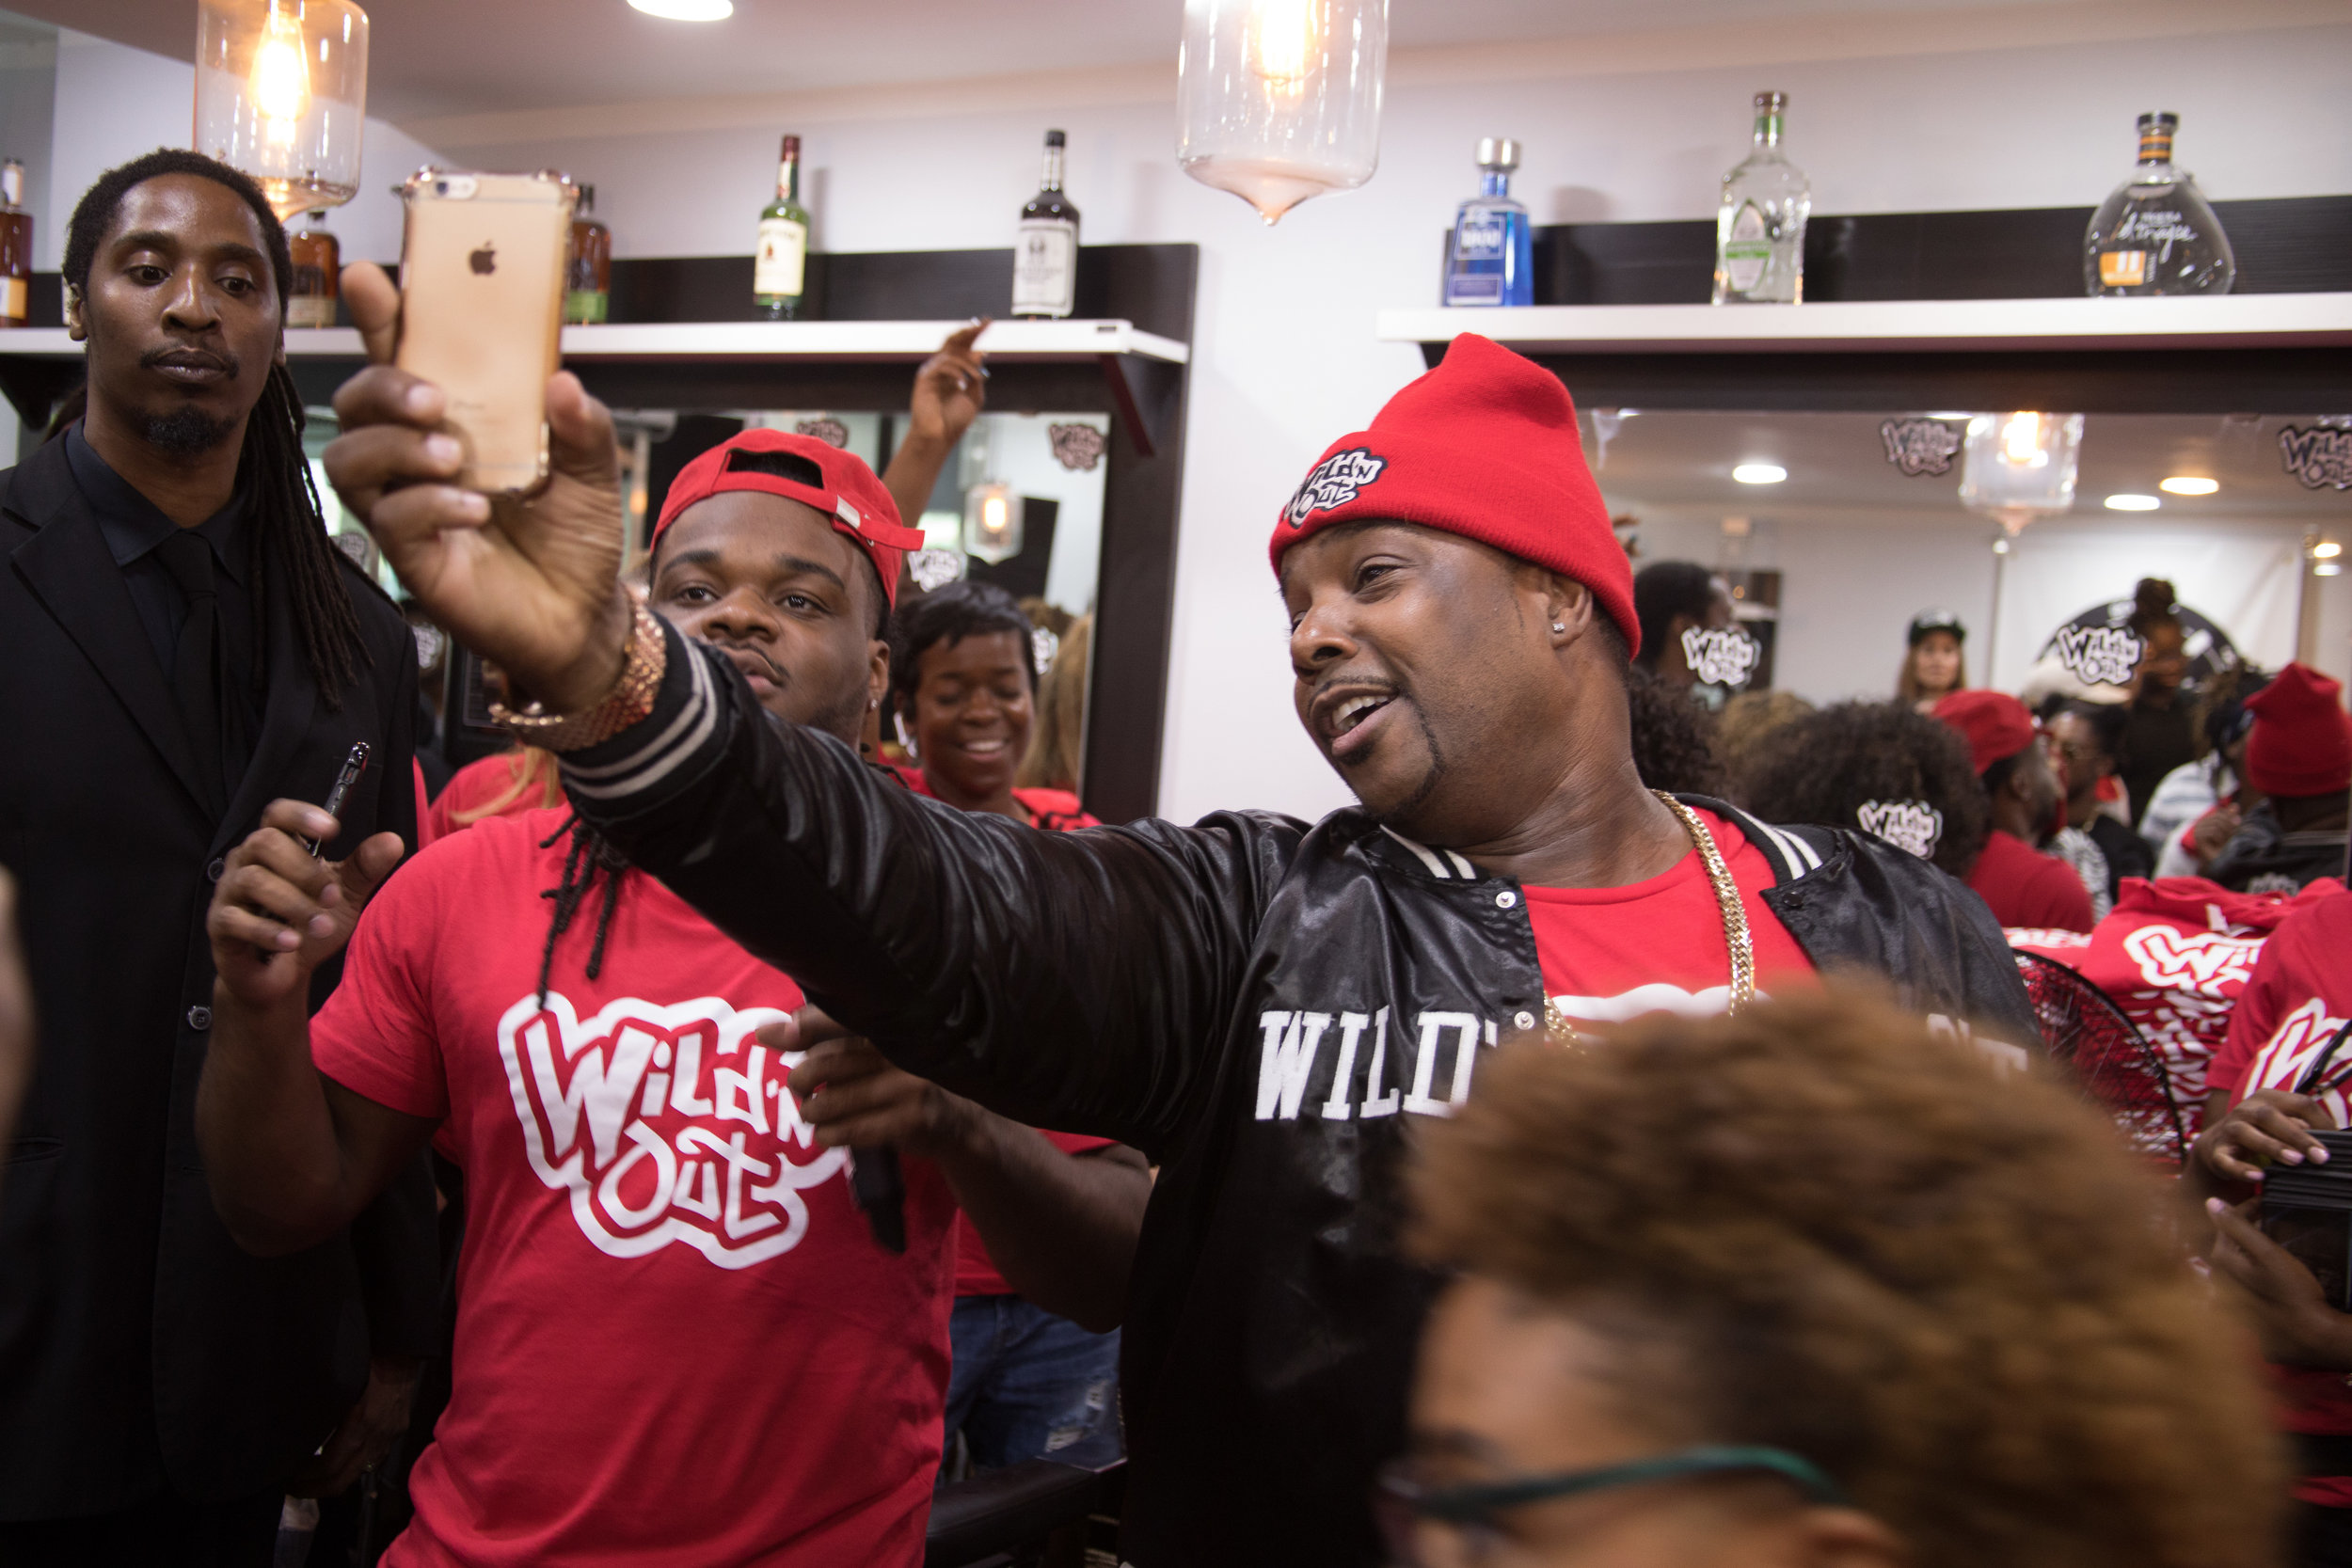 Wildn out-9.jpg